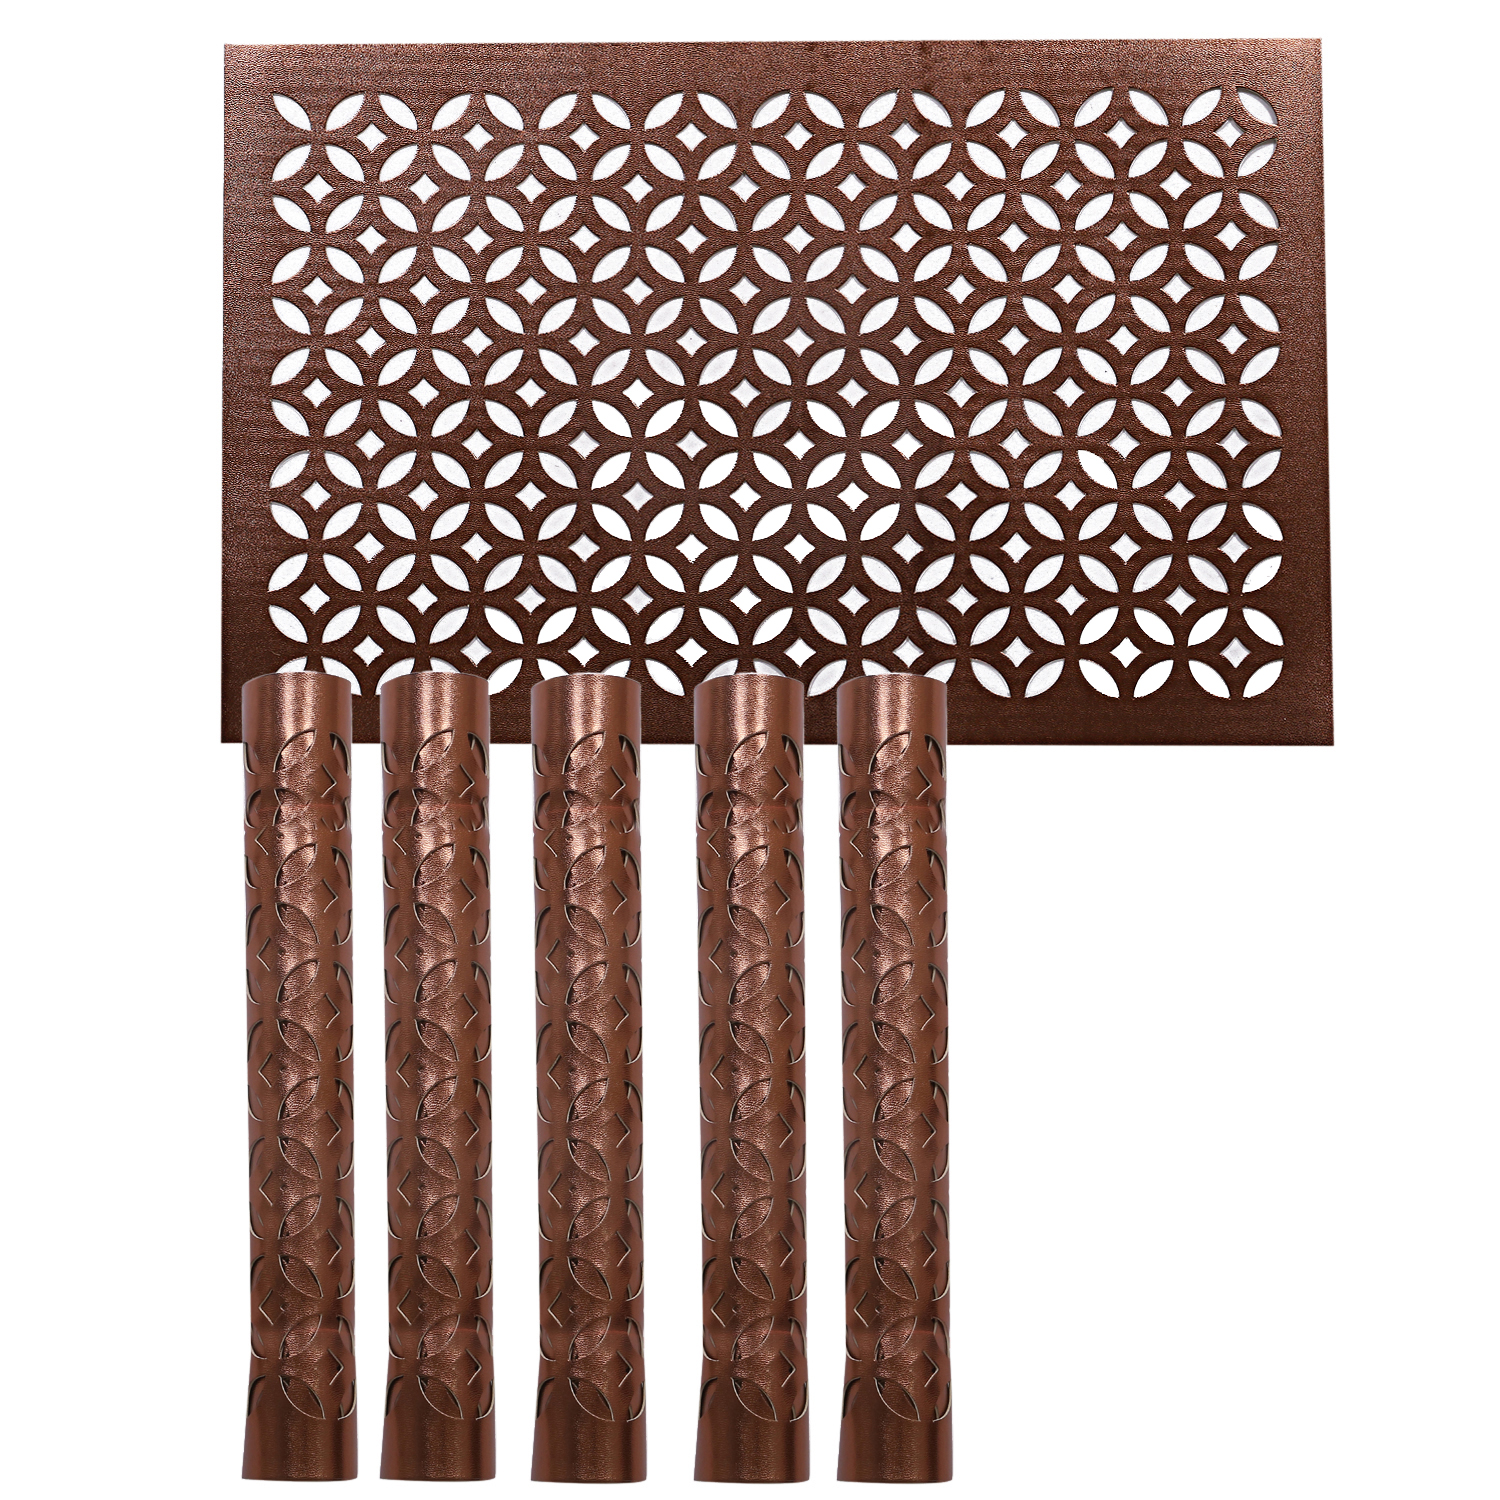 Kuber Industries PVC Soft leather 6 Pieces Dining Table Placemat Set (Copper) -CTLTC11342